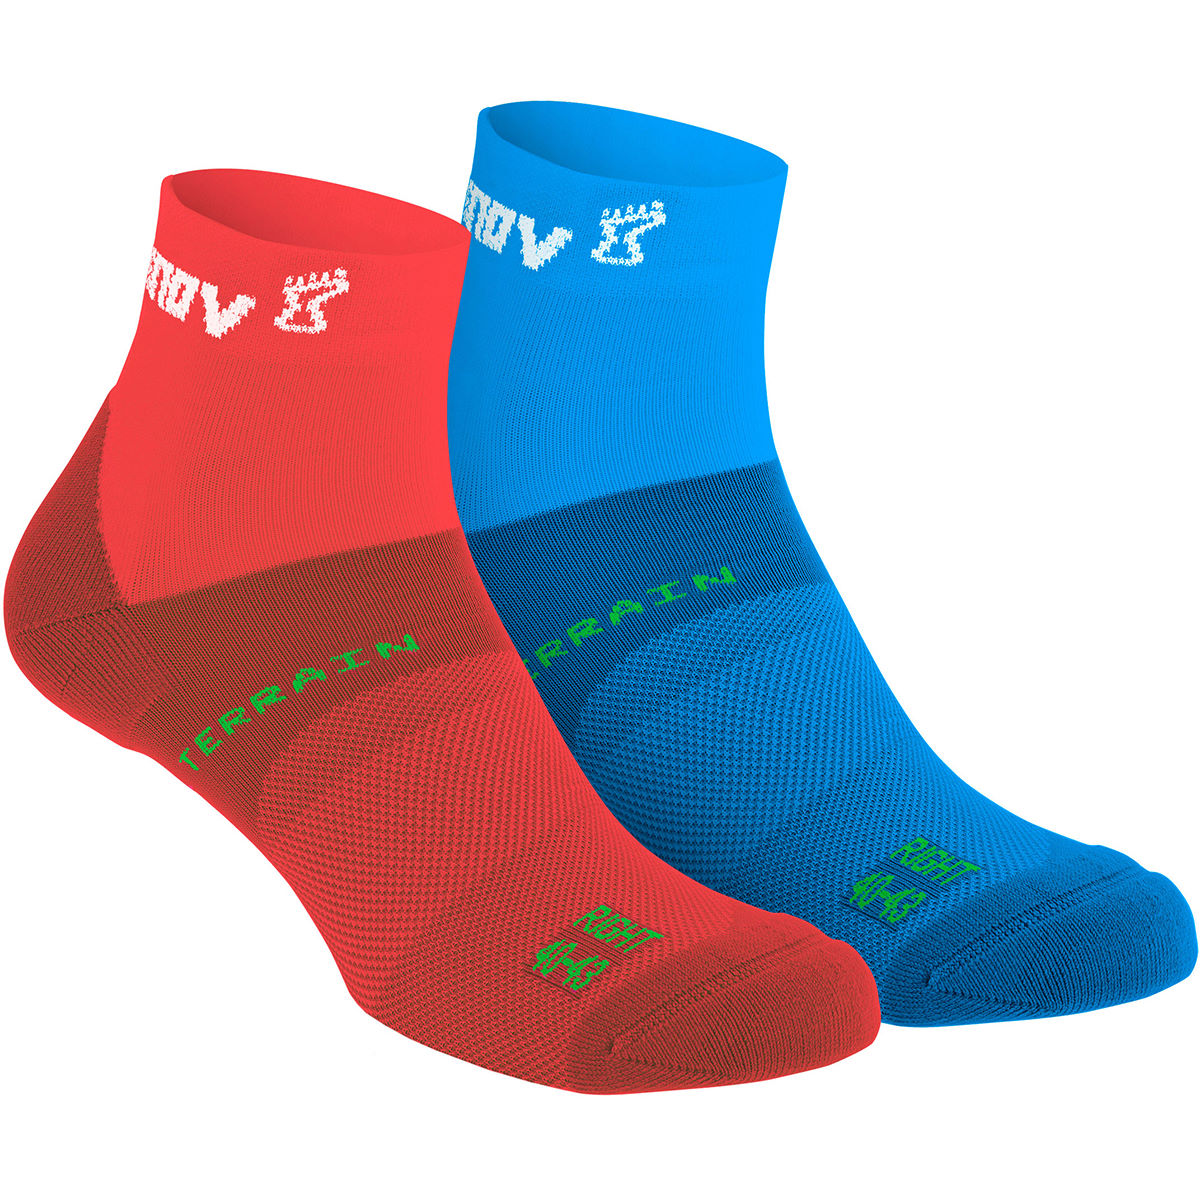 Chaussettes Inov-8 All Terrain Sock Mid (lot de 2 paires) - S